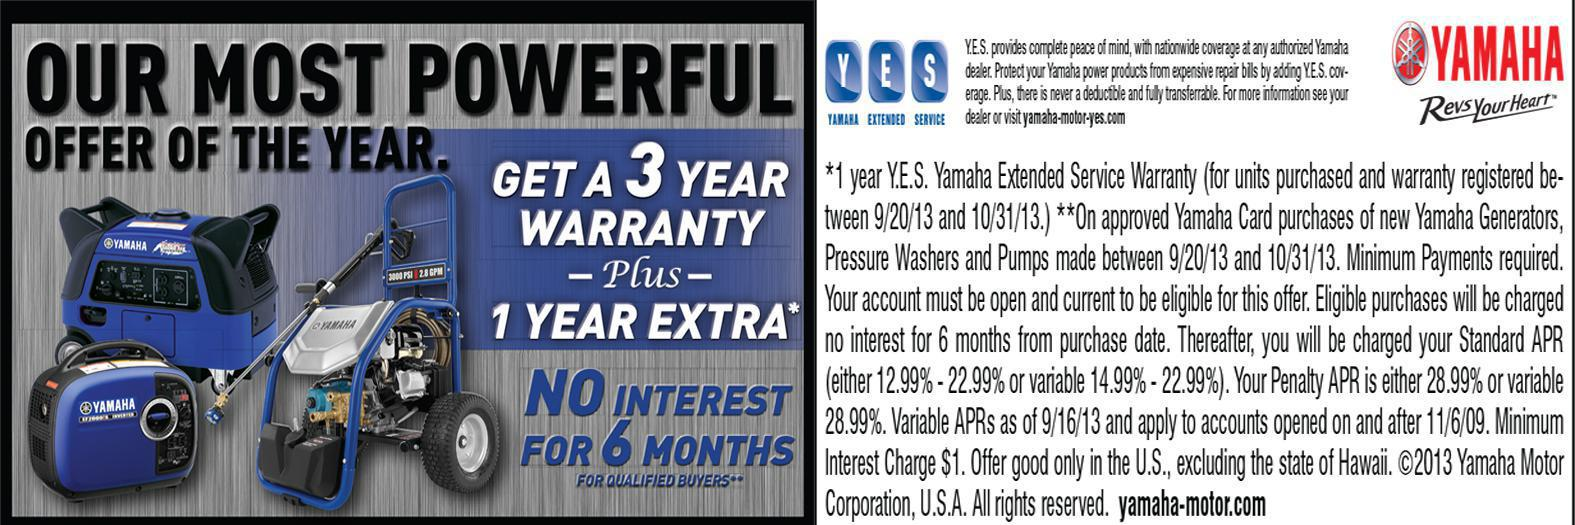 Yamaha Power Washer 3 year warranty